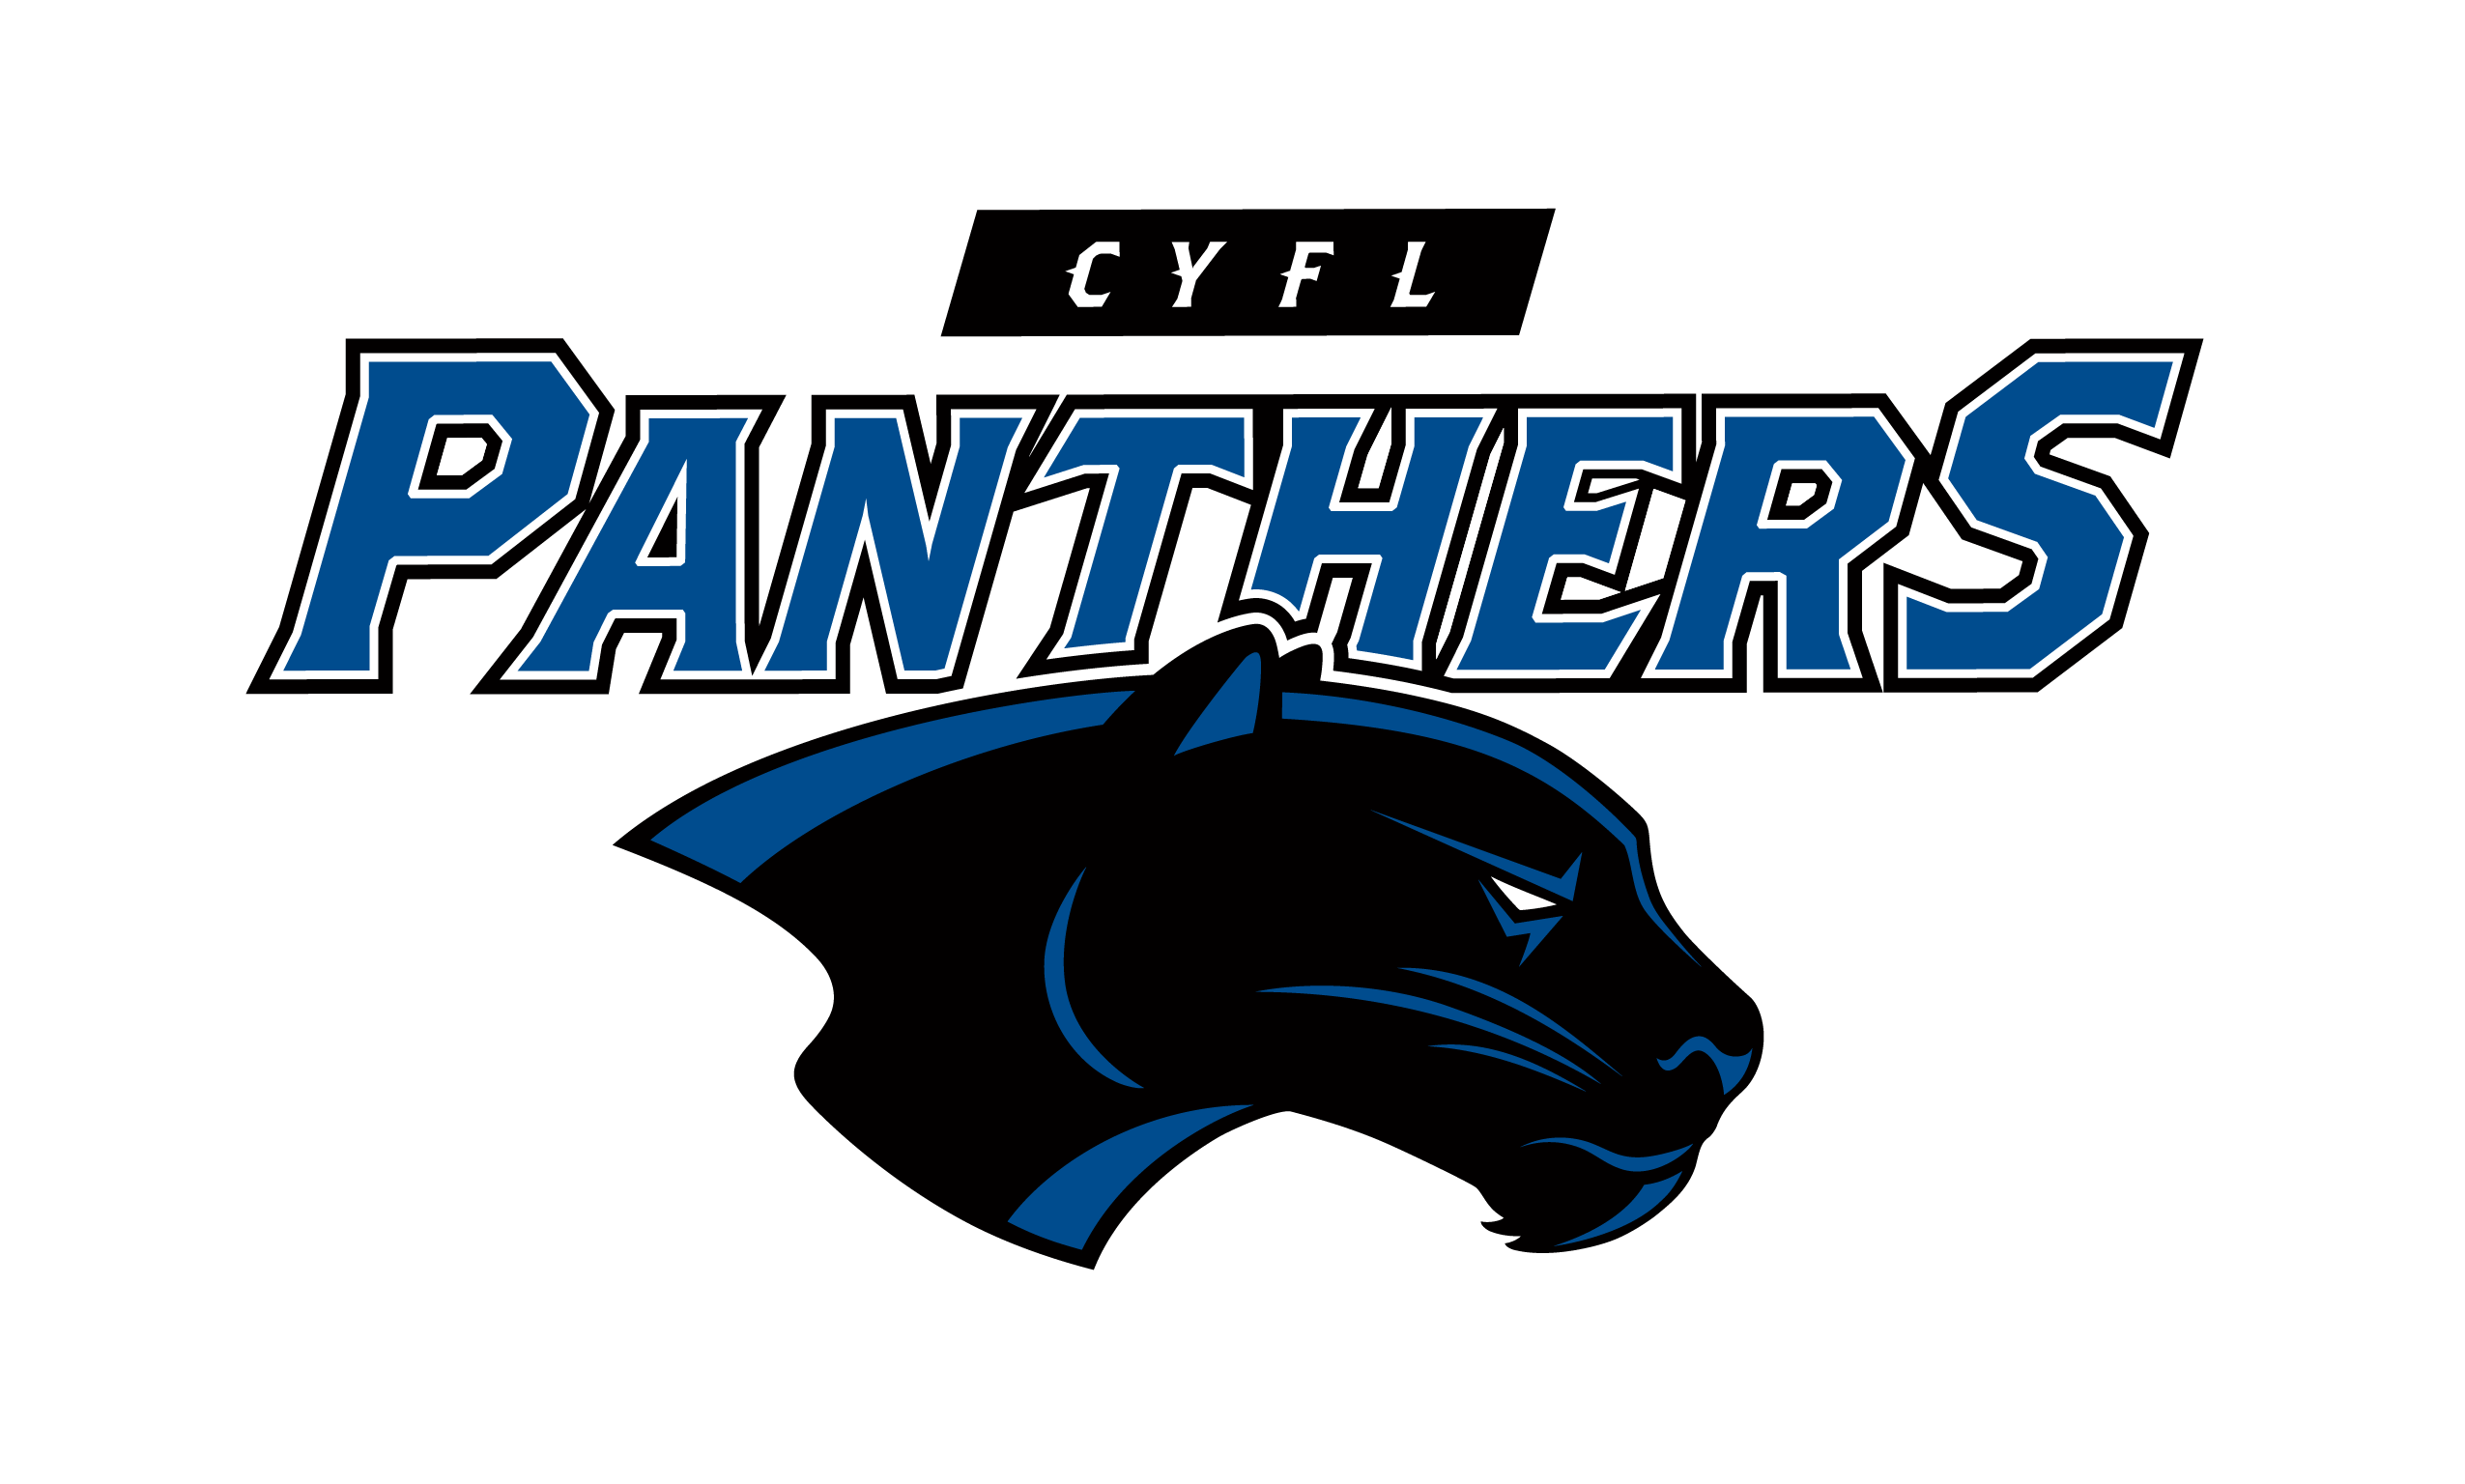 Central Youth Football Panthers Logo